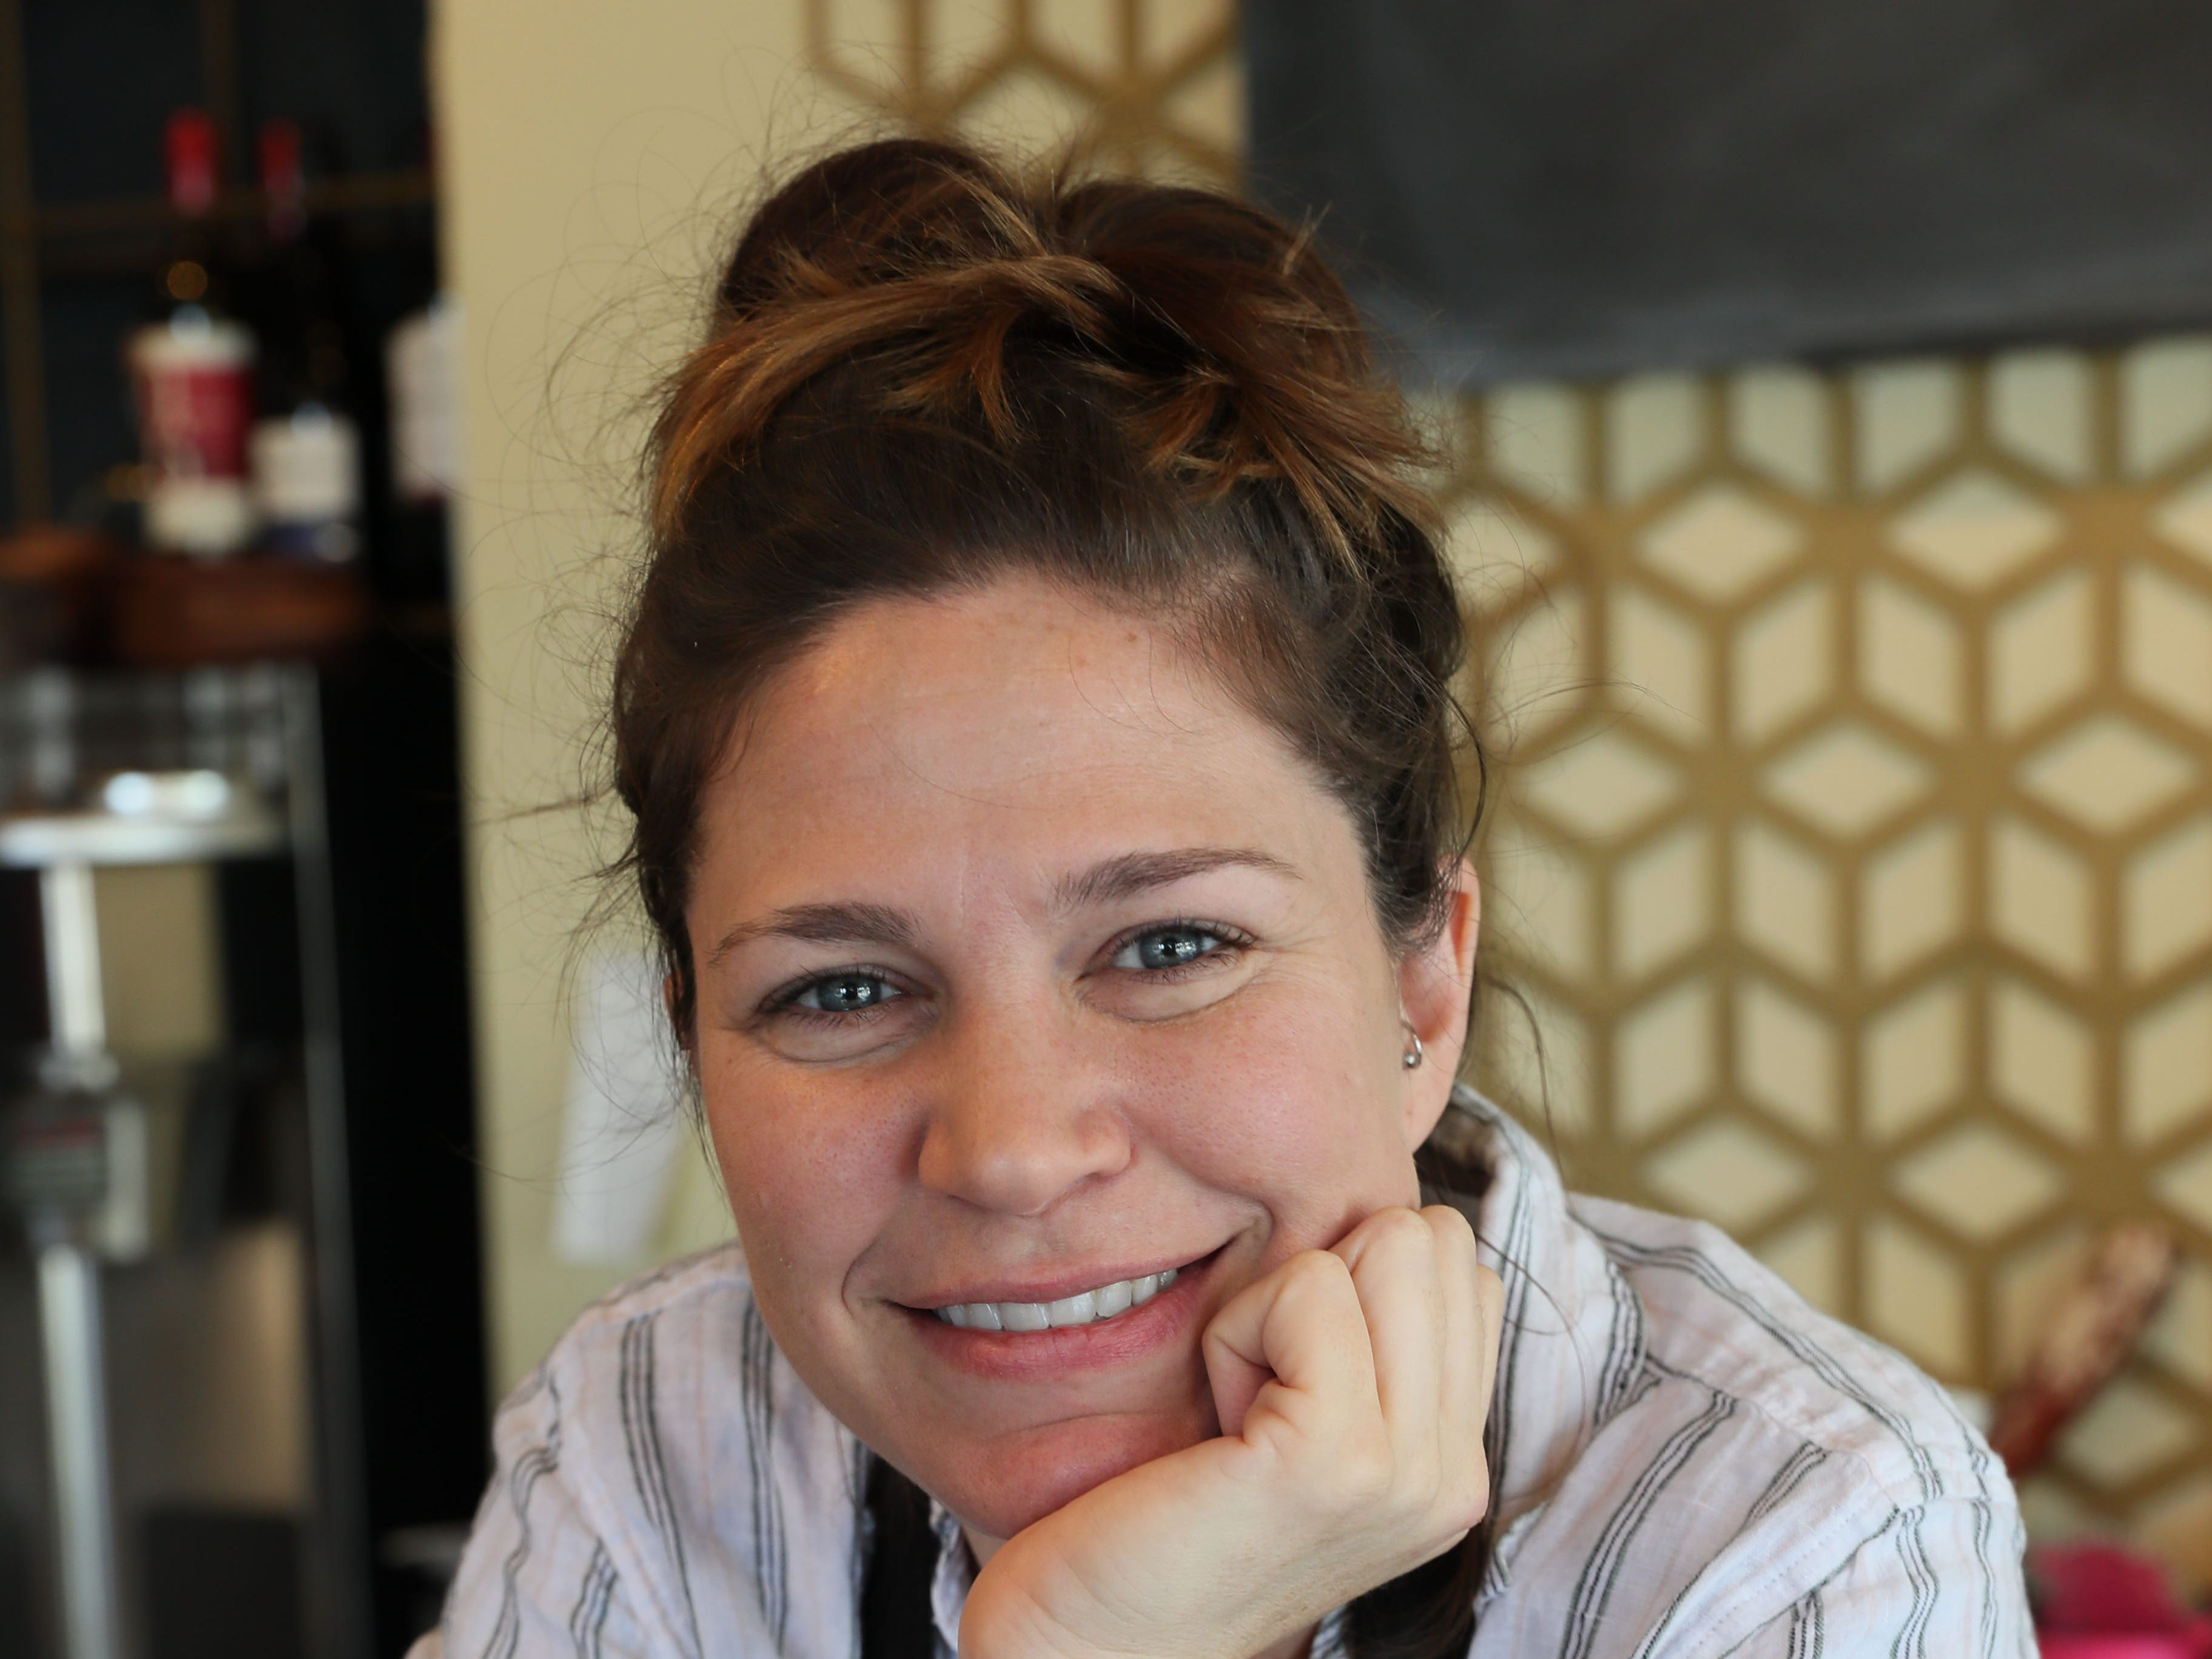 Owner Melanie Manuel has created a celestial atmospher at Celesta, a vegan restaurant at 1978 N. Farwell in Milwaukee.